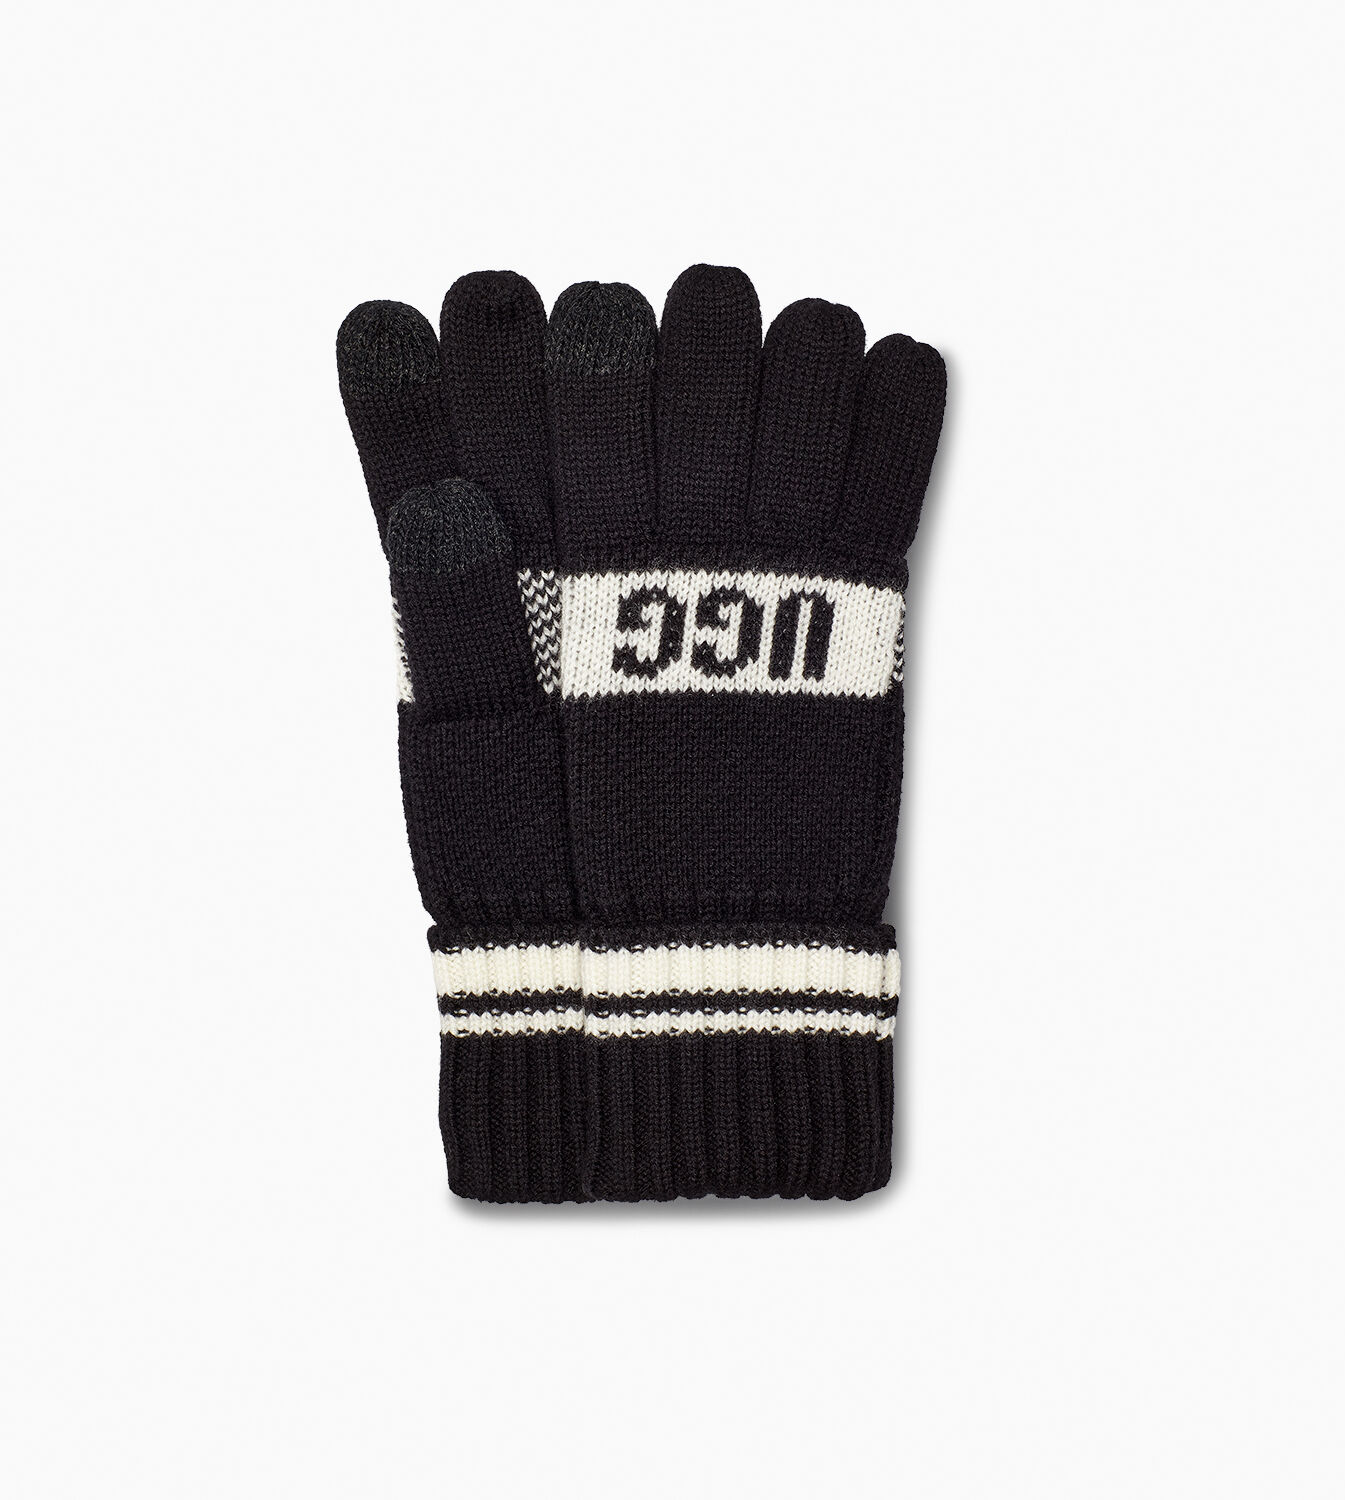 Knit Graphic Logo W/ Touch - Ugg (US)